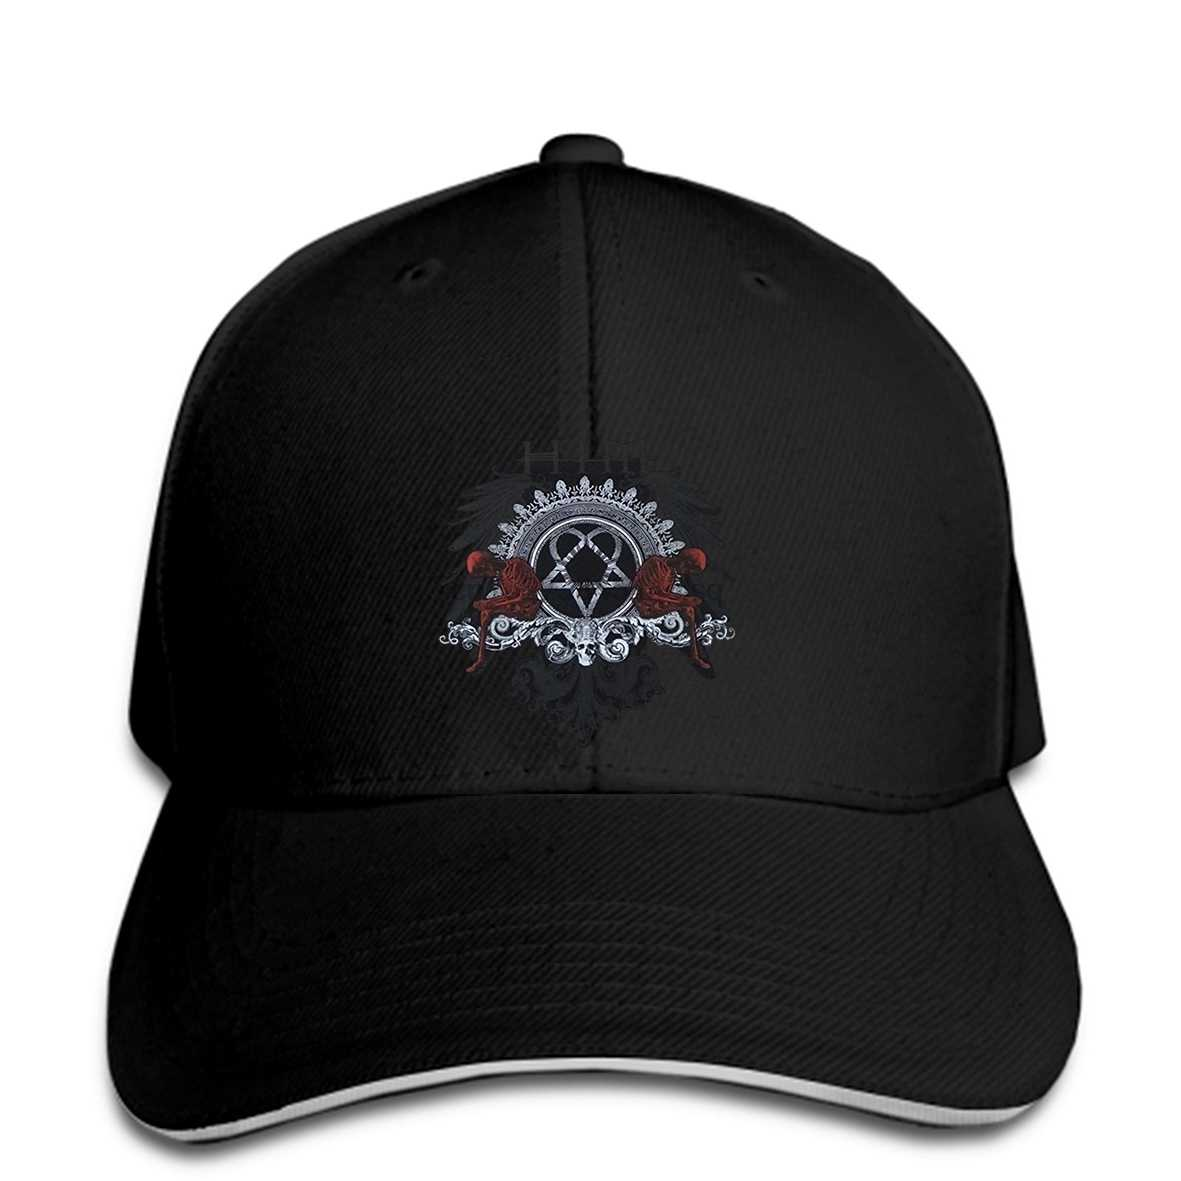 Men Baseball Cap His Infernal Majesty Heartagram and Skeleton Baseball Cap funny Baseball Cap novelty t women